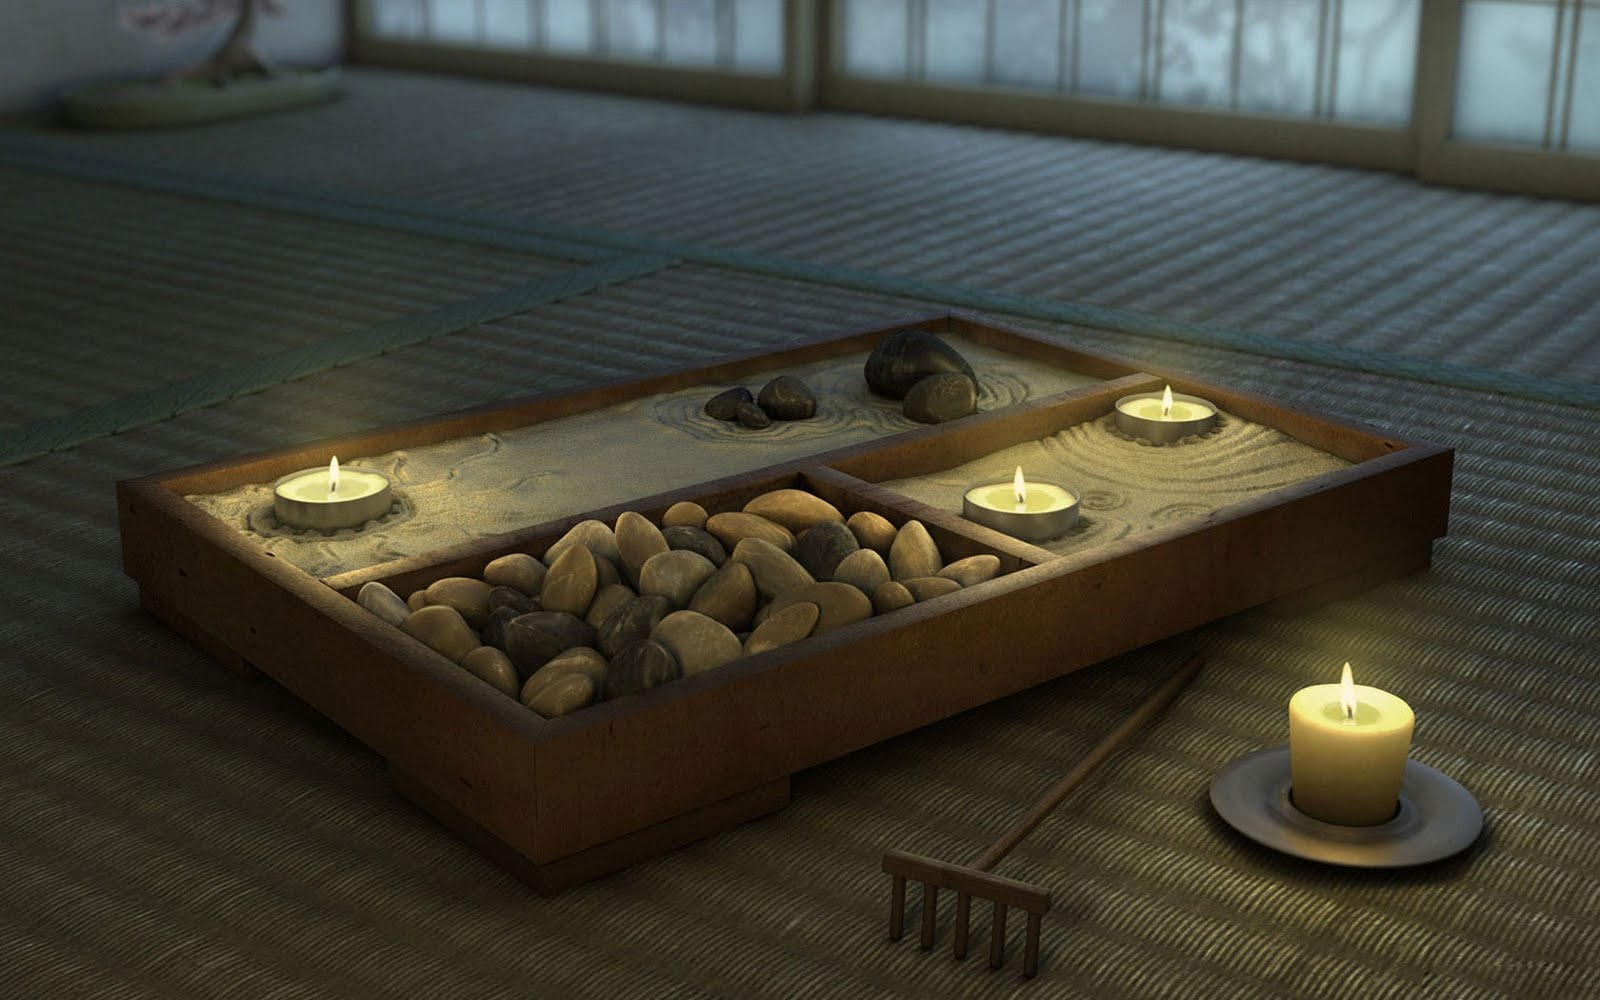 Top 5 best desktop zen gardens list my zen decor for Mini zen garden designs